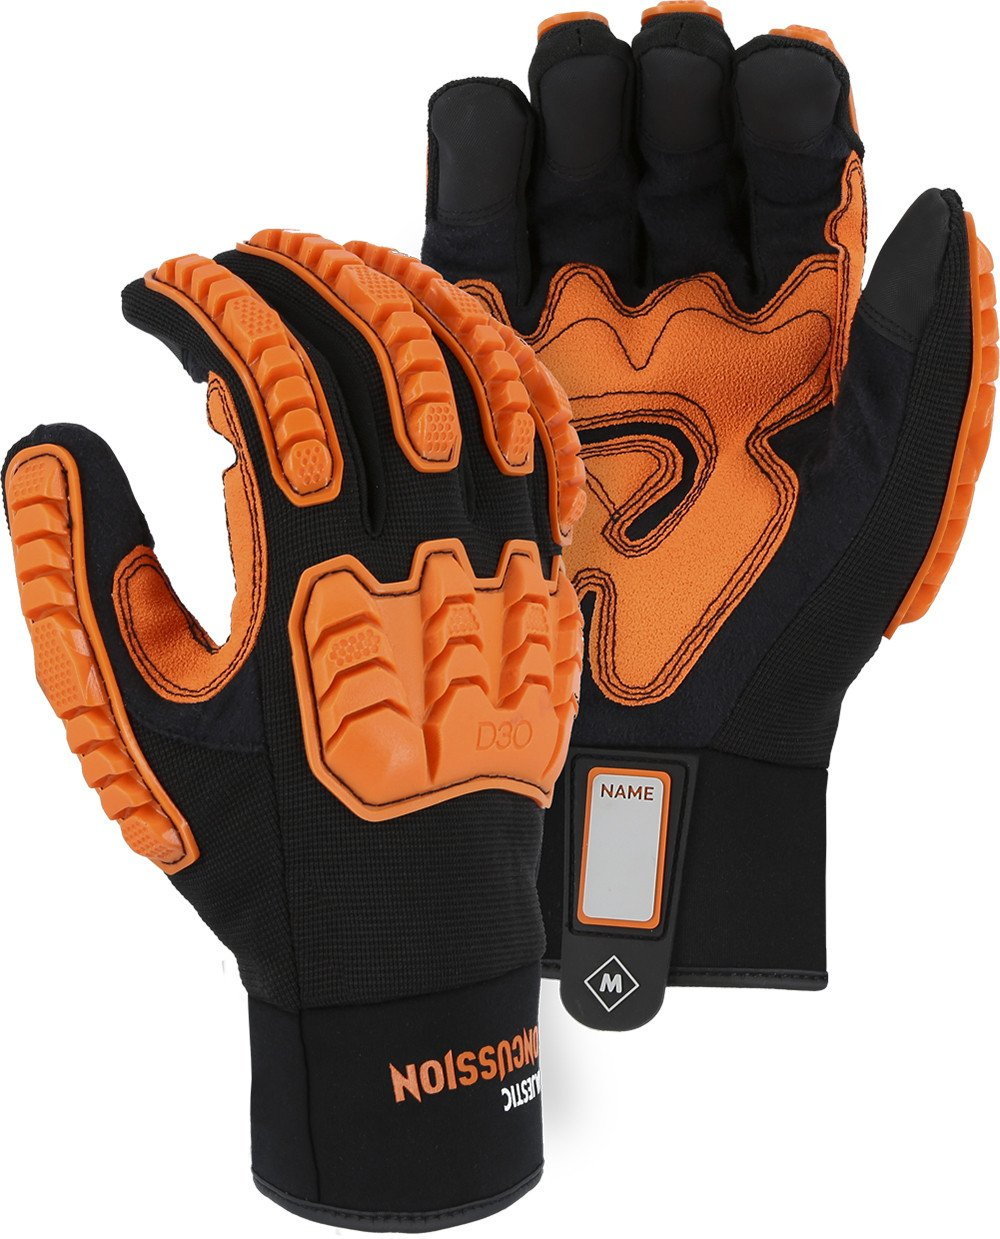 Majestic 21472BK Knucklehead Armor Skin Mechanics Glove with D3O Impact Protection & Palm Padding Size XL